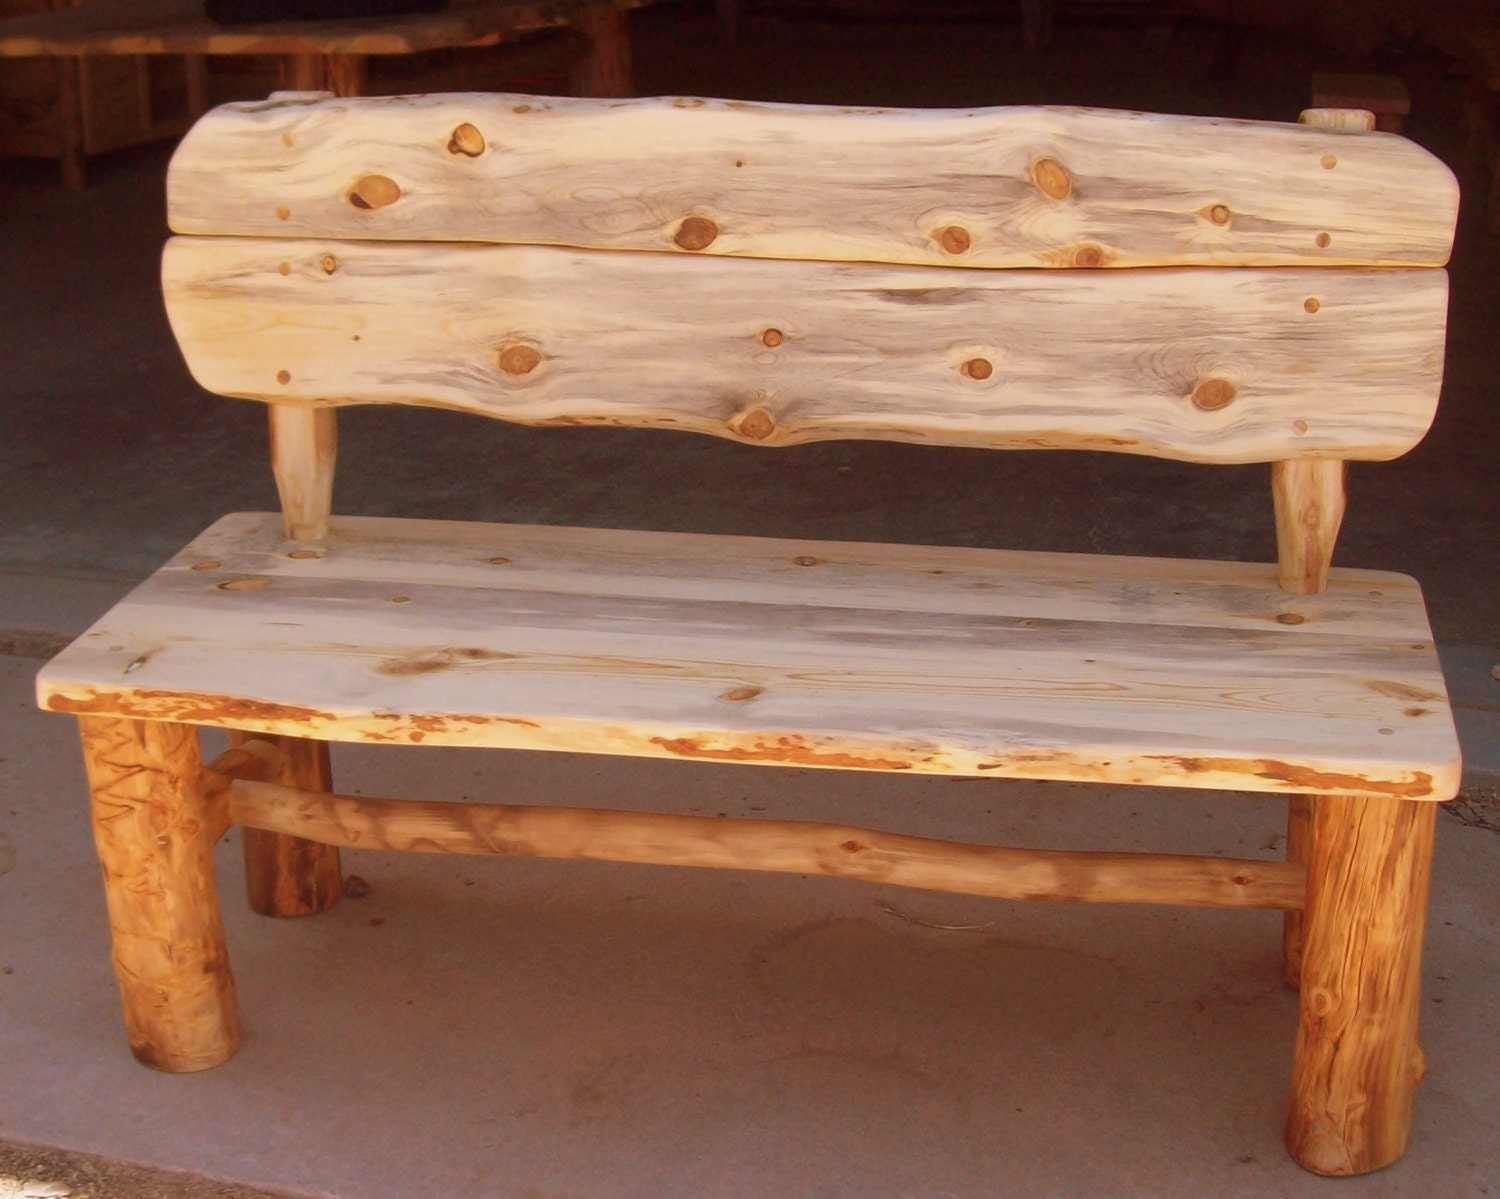 How To Make Rustic Wood Furniture Furniture Design Ideas